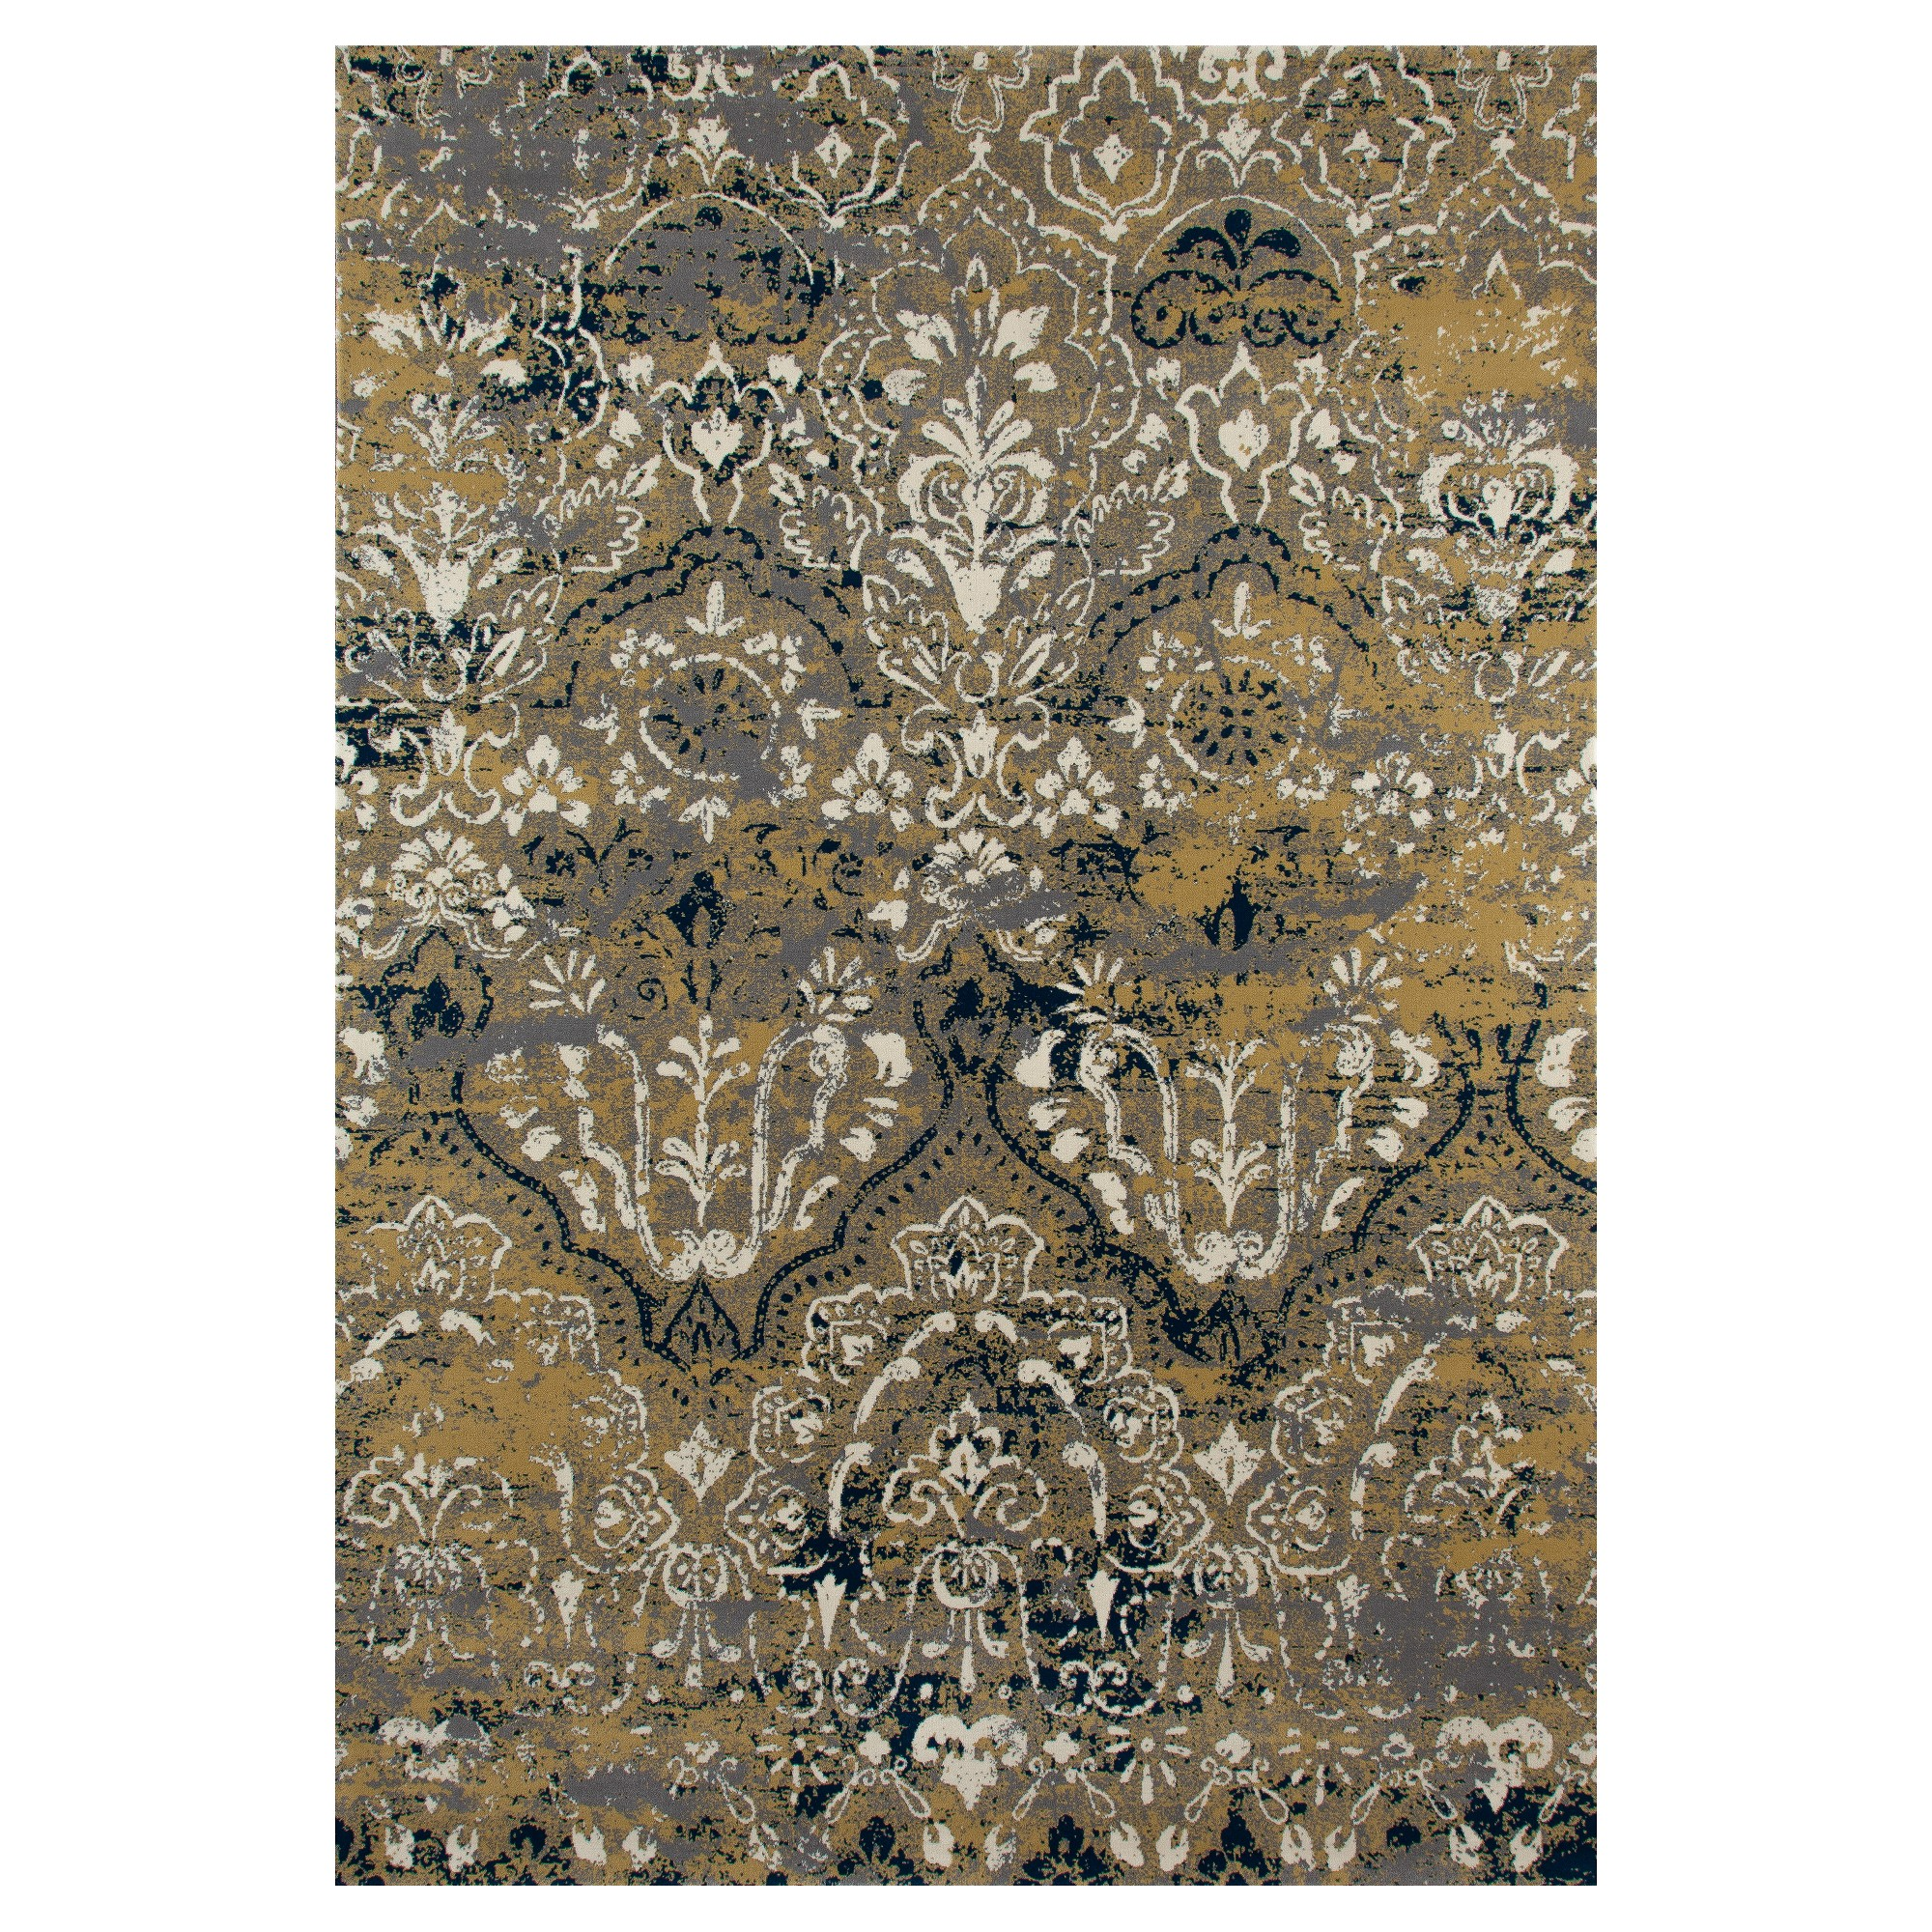 Yellow Classic Woven Area Rug - (7'X10') - Art Carpet